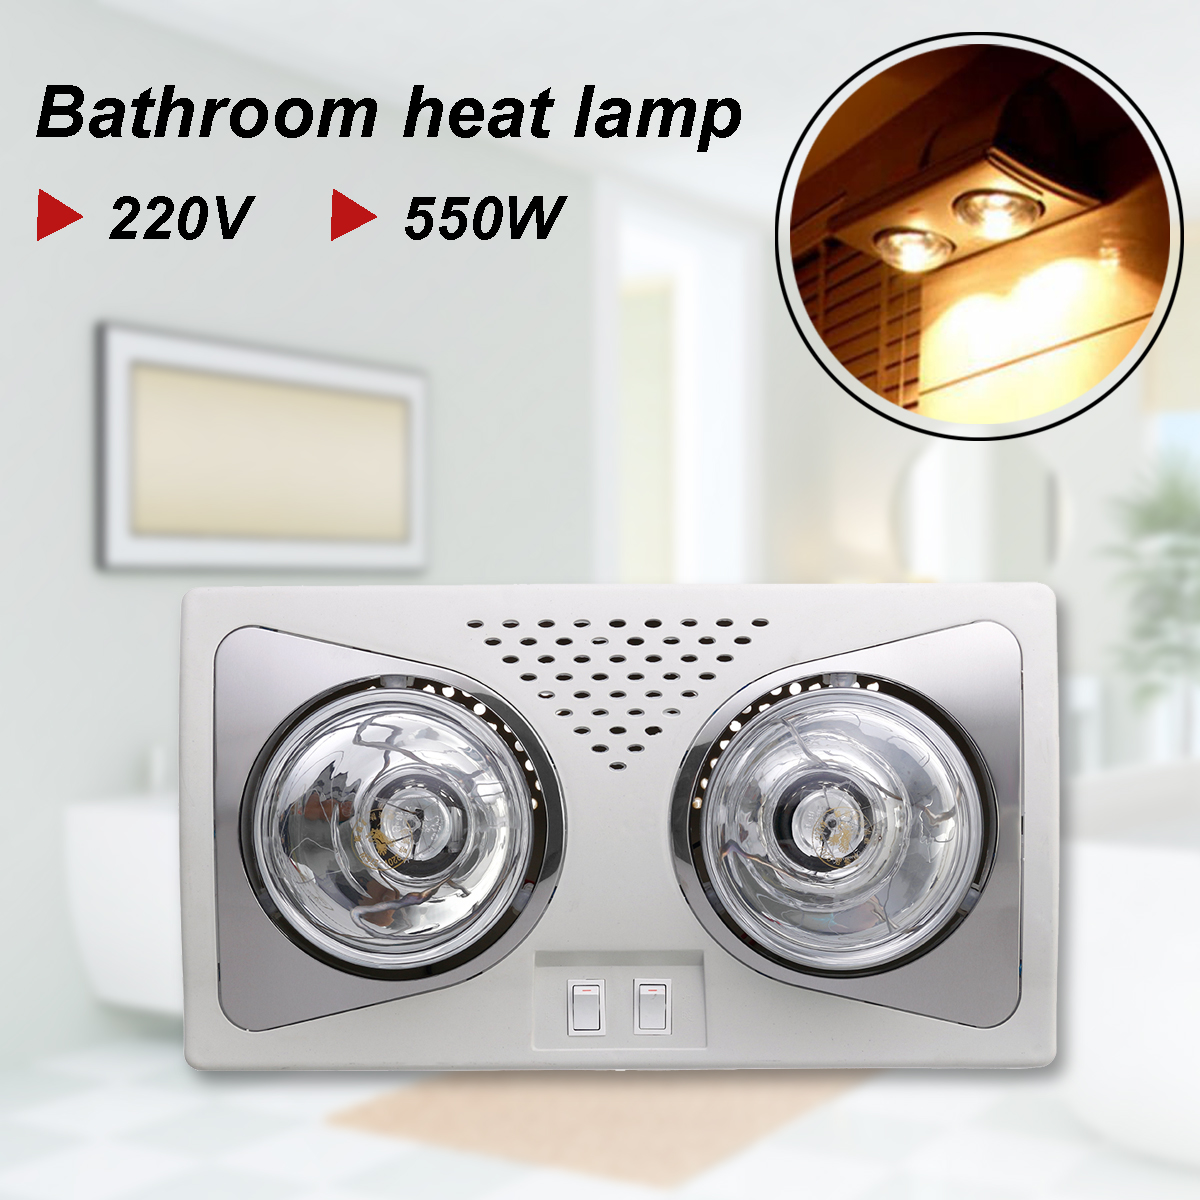 220v 550w bathroom heat lamp led ceiling lighting warm 18681